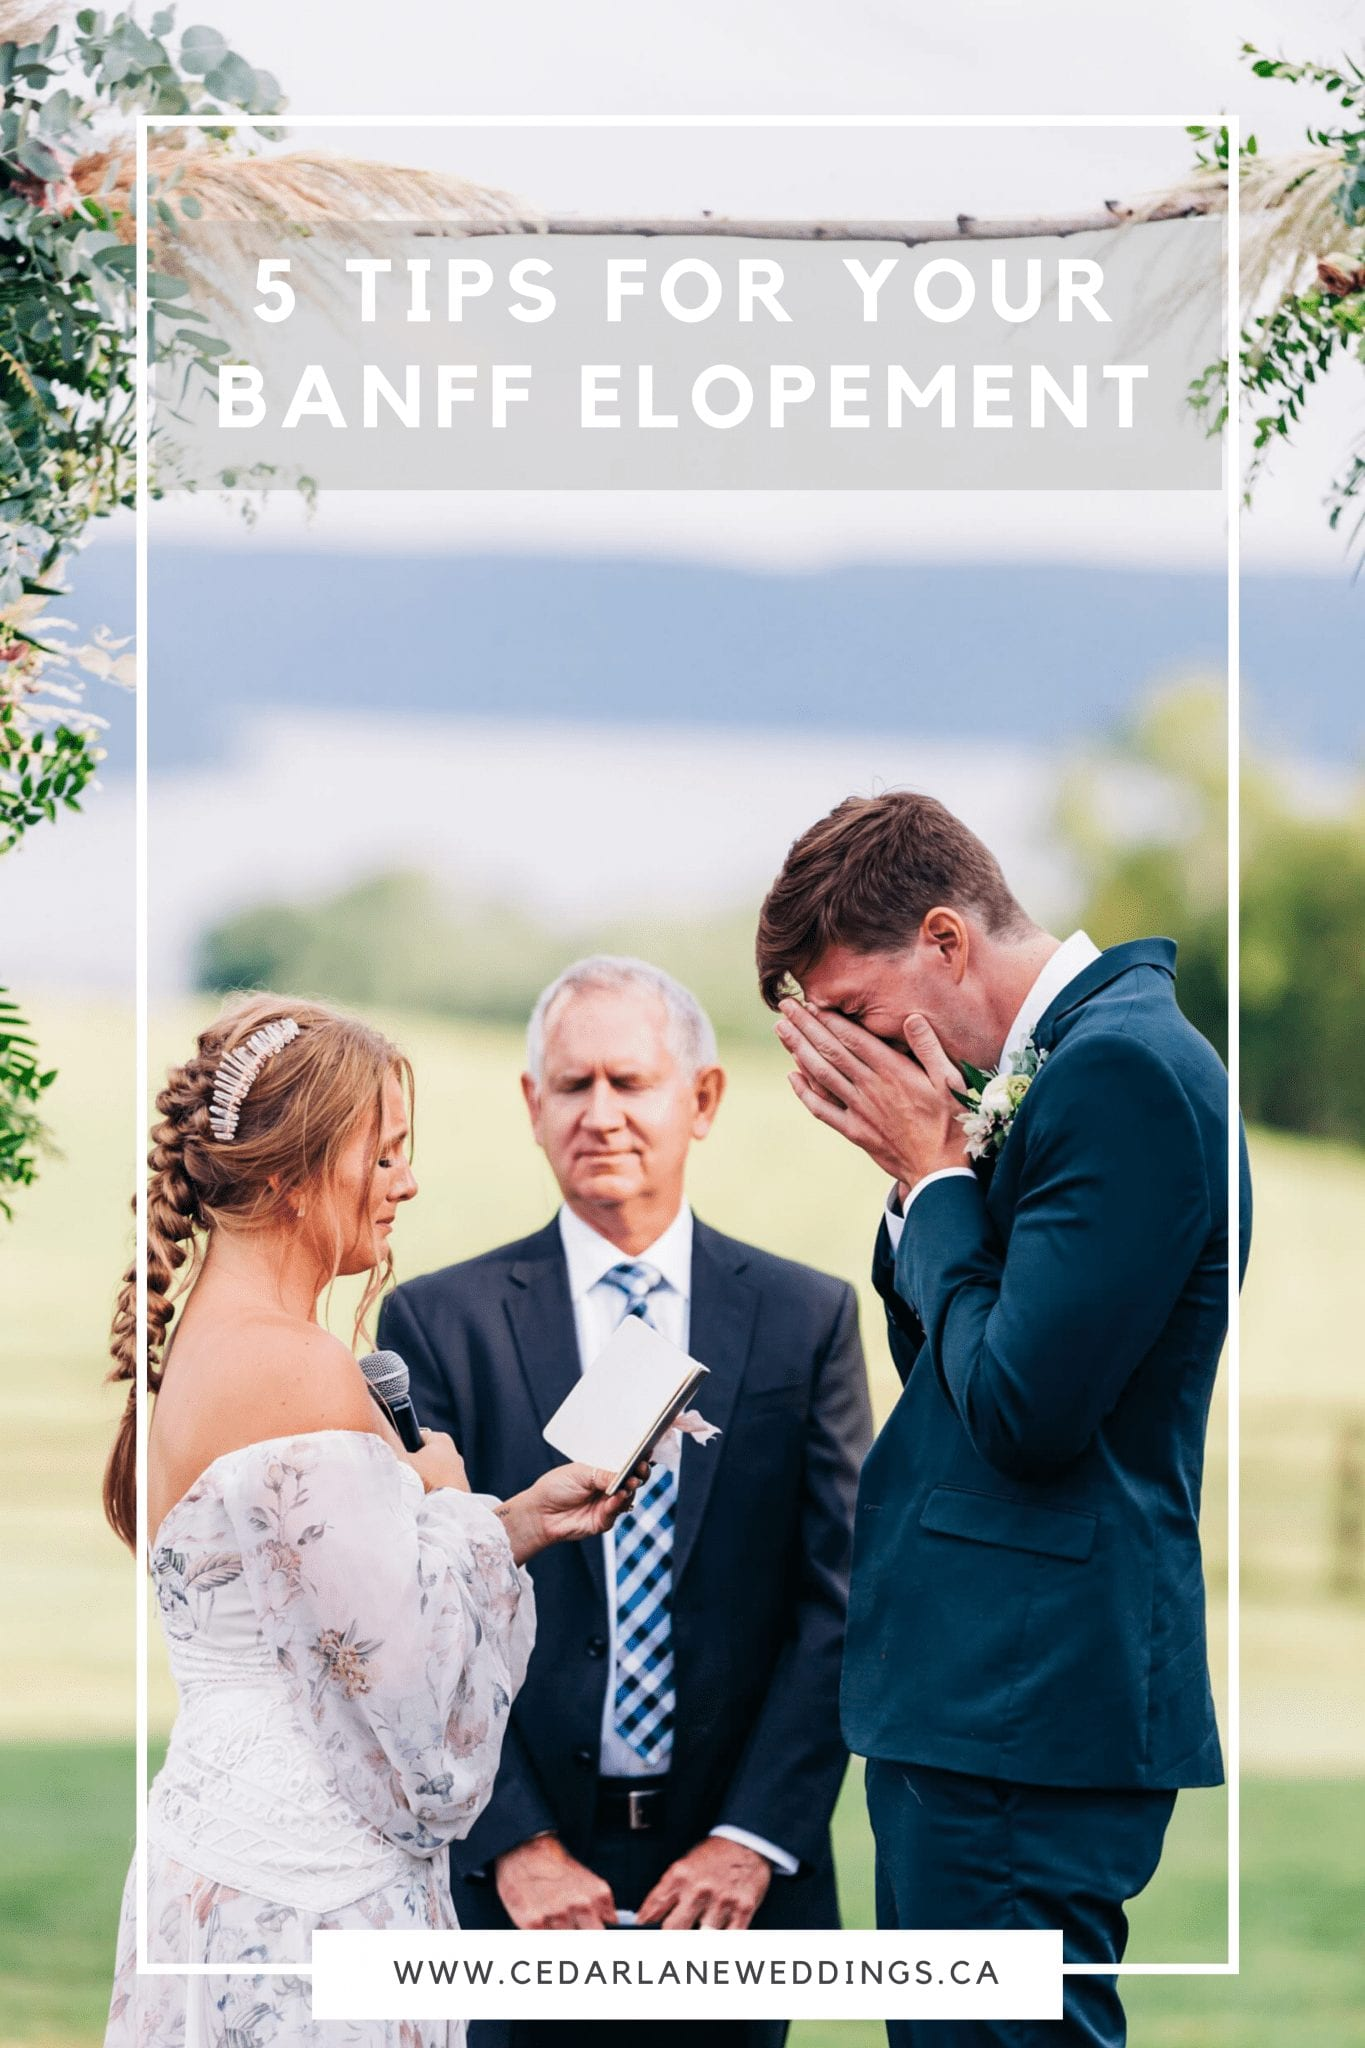 5 Tips for Your Banff Elopement